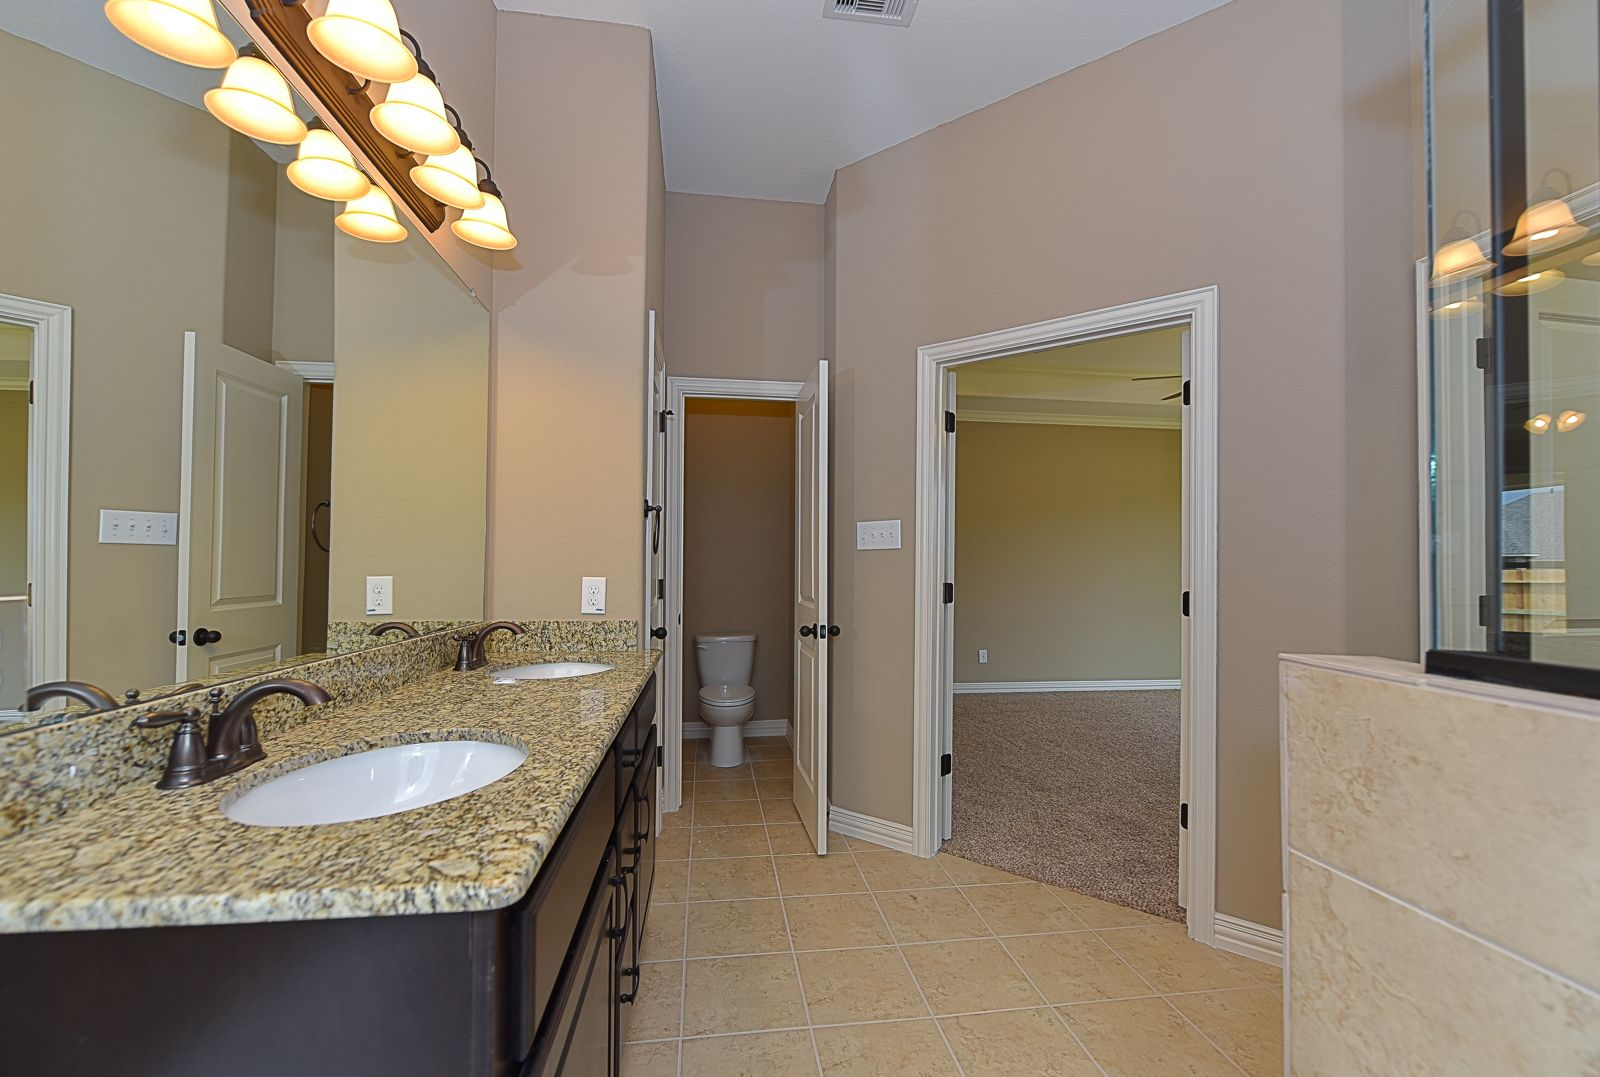 Bathroom featured in The Rene By Kinsmen Homes  in Beaumont, TX